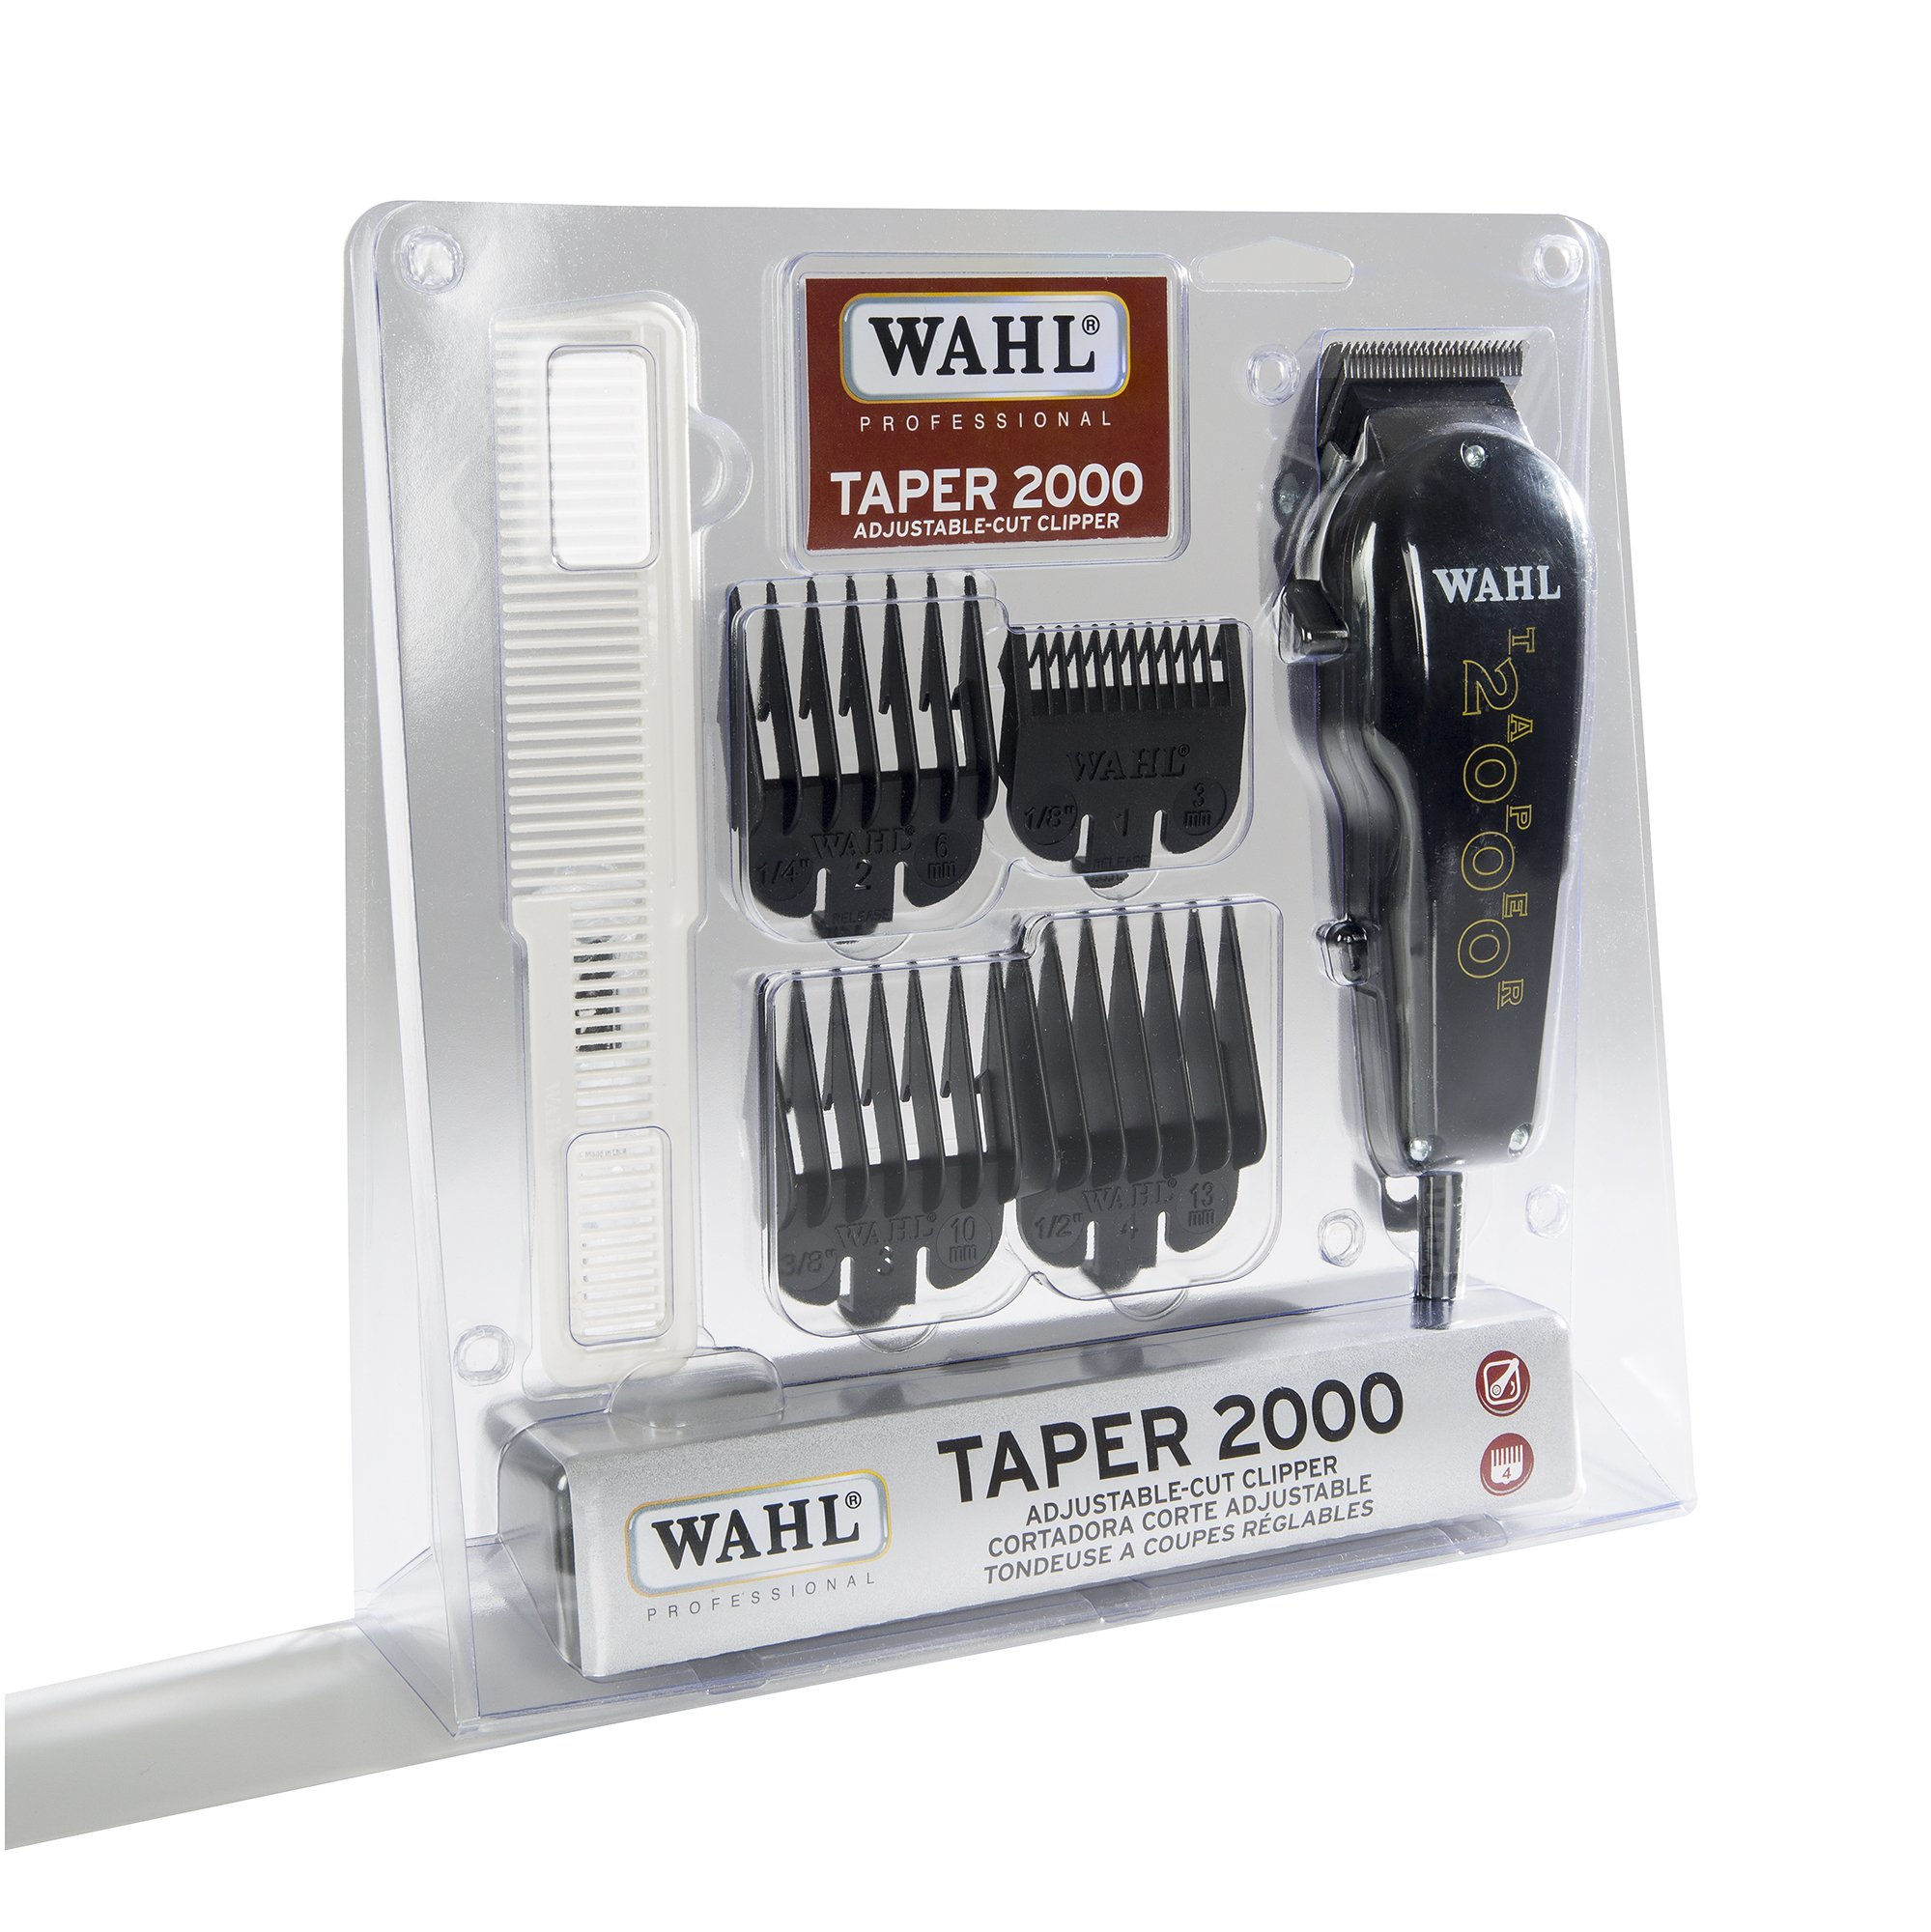 Wahl Professional Taper 2000 Adjustable Cut Clipper #8472-850 - Black Blade Attachments by Wahl Professional